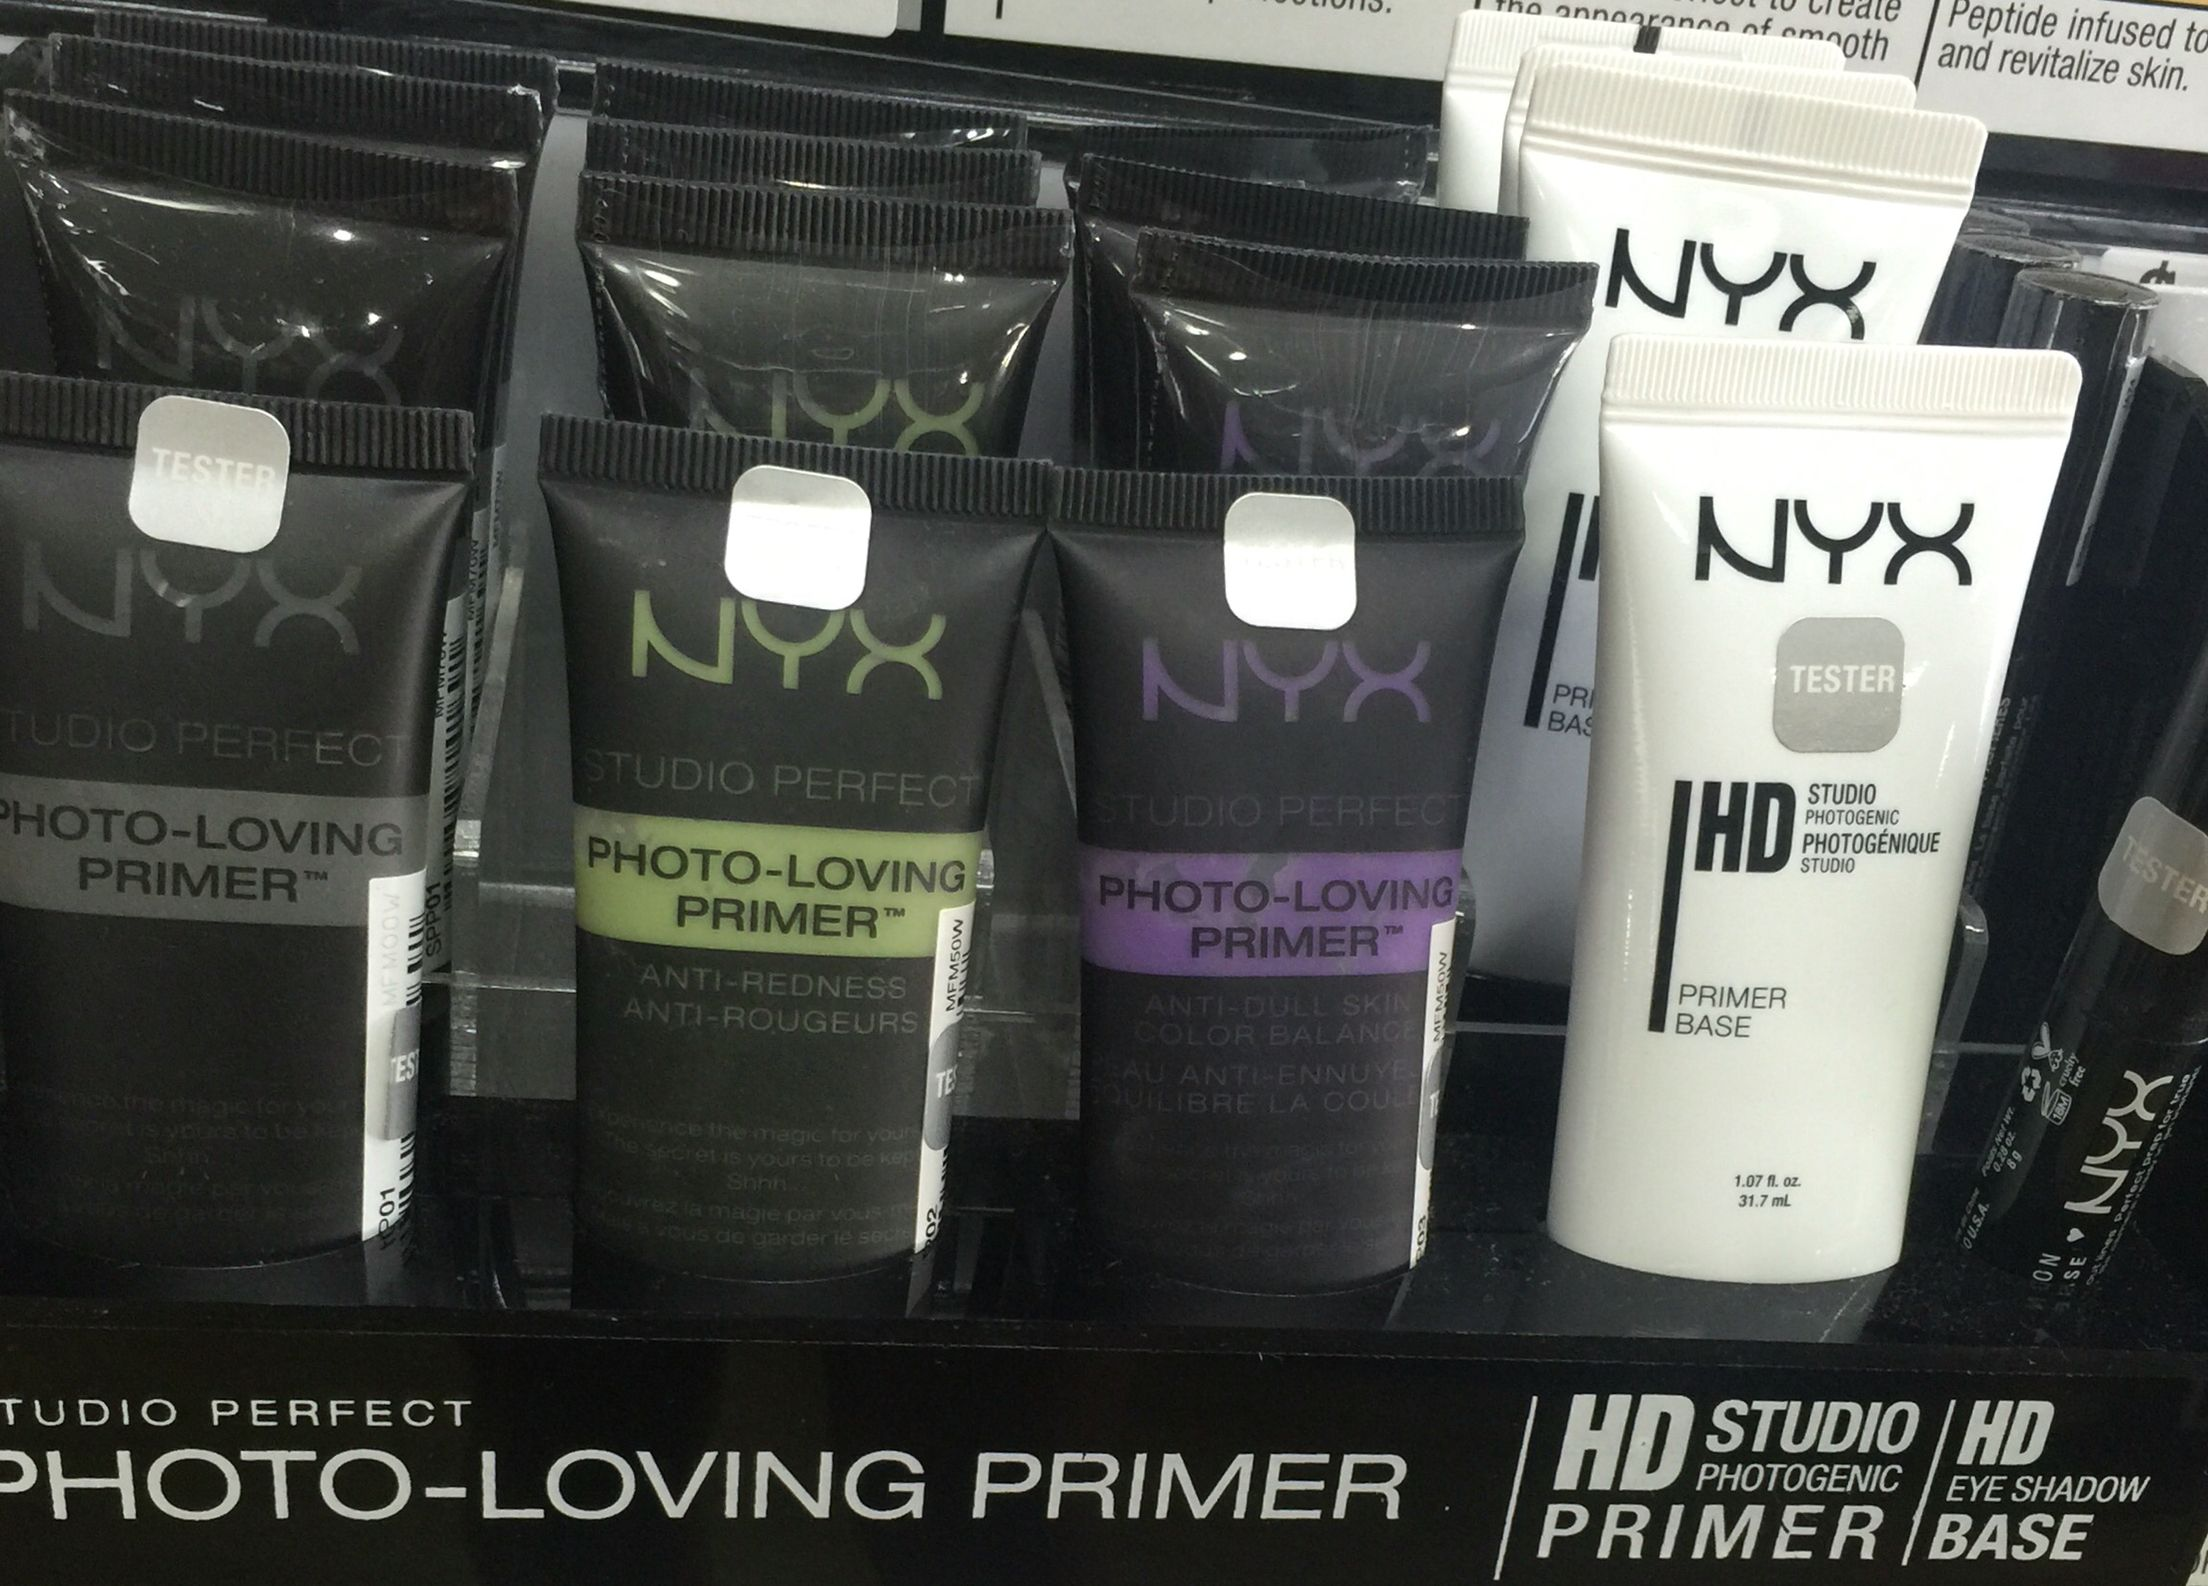 NYX 'Photo Loving Primer' stay matte & let makeup sit nicely all day.  Creating the perfect canvas for makeup application, @NYX primers are are oil free and suitable for all skin types leaving skin on a matte finish look. #FIVE options:  •01 Clear- ensures be longevity of your makeup  •02 Green- balances redness in the complexion •03 Lavender- brightens and illuminates the skin  • 101 HD Primer- high definition, mineral enriched, talc-free & paraben free.  •04 HD Eyeshadow Base- for the colo